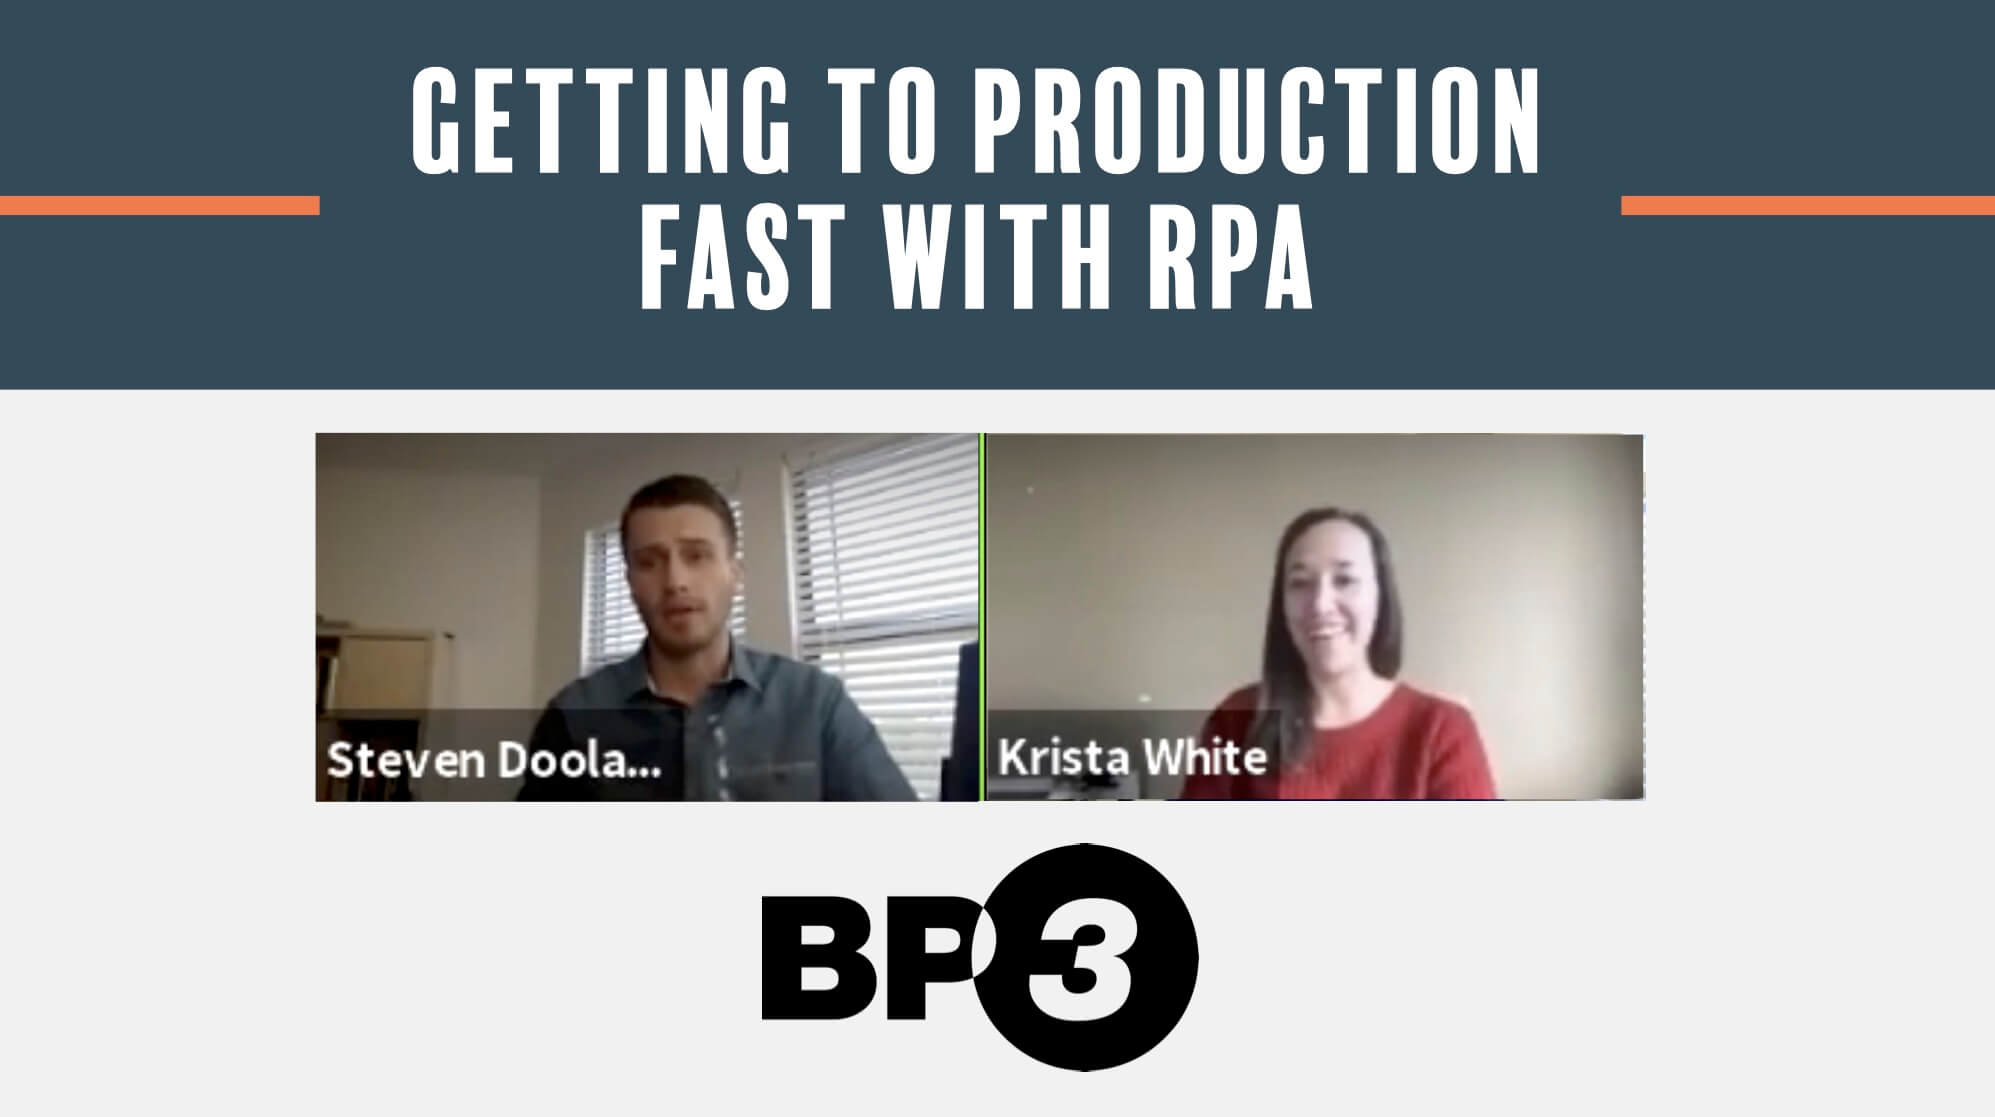 At BP3, we look for faster ways to get you to your business value - including, how fast we can get your solutions into production. In this BP3 Live video, Steven shares how to get to production faster with BP3 and RPA: